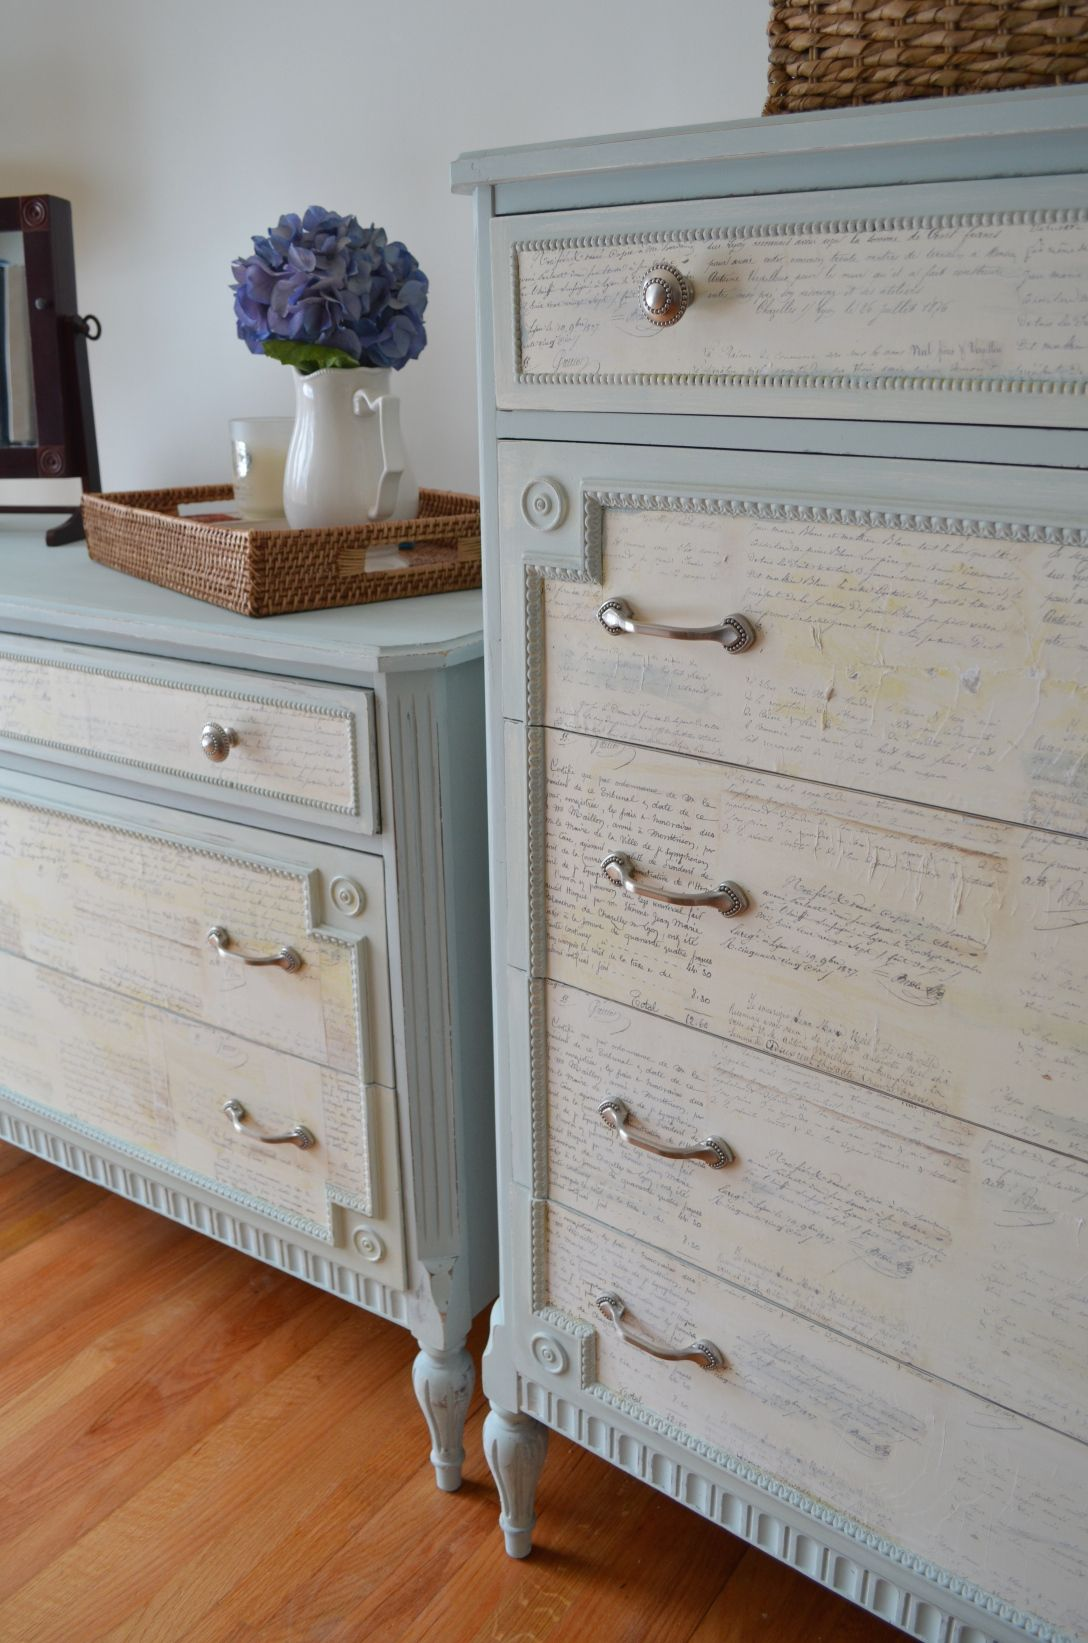 Duck Egg Blue And Old White Chalk Paint Help Enhance A Decoupaged Drawer Set Lindsey